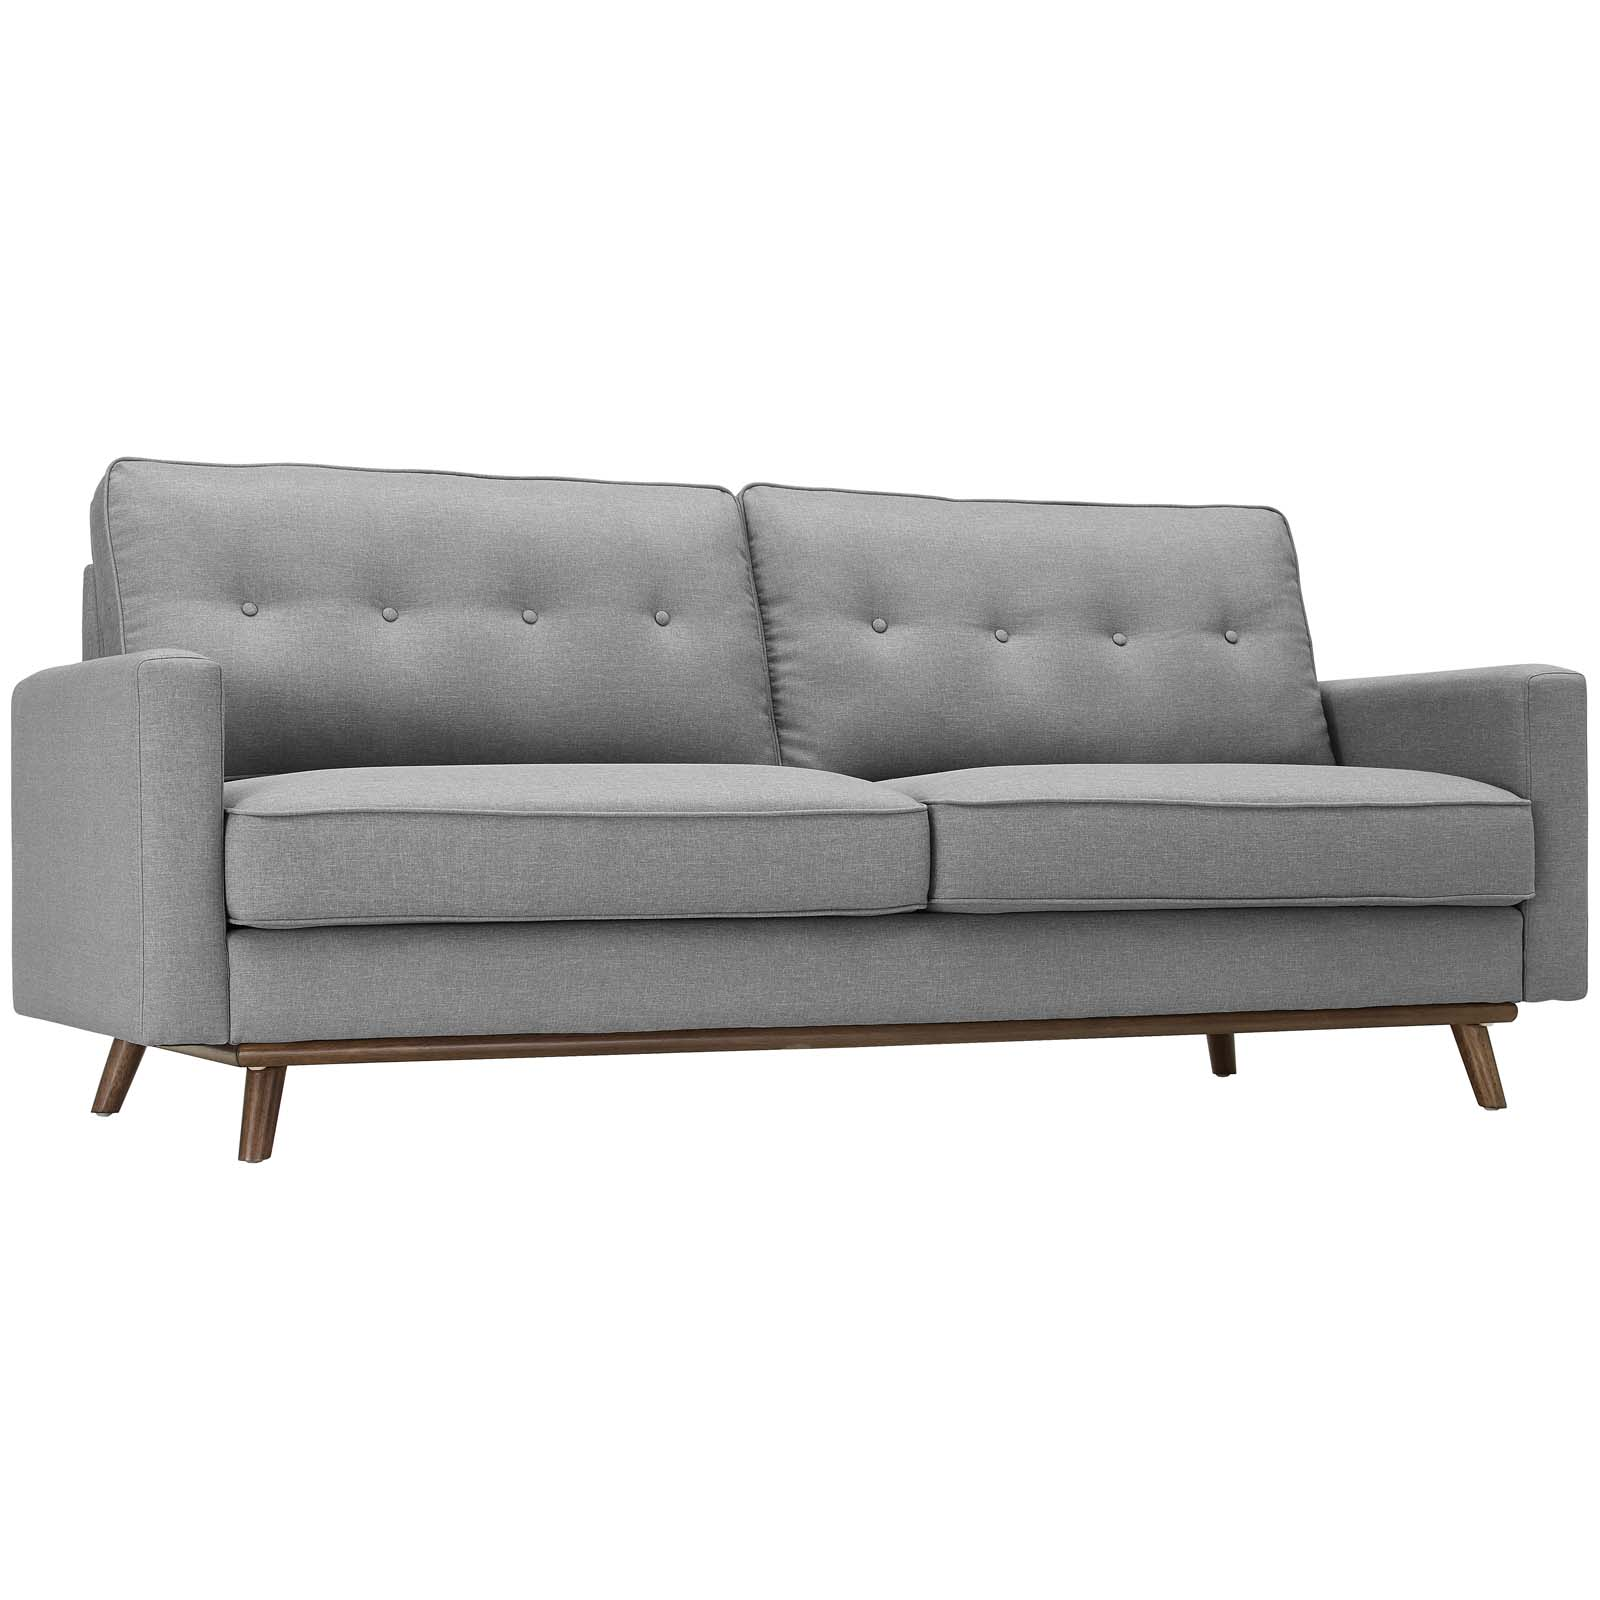 Vincent 3-Seater Sofa